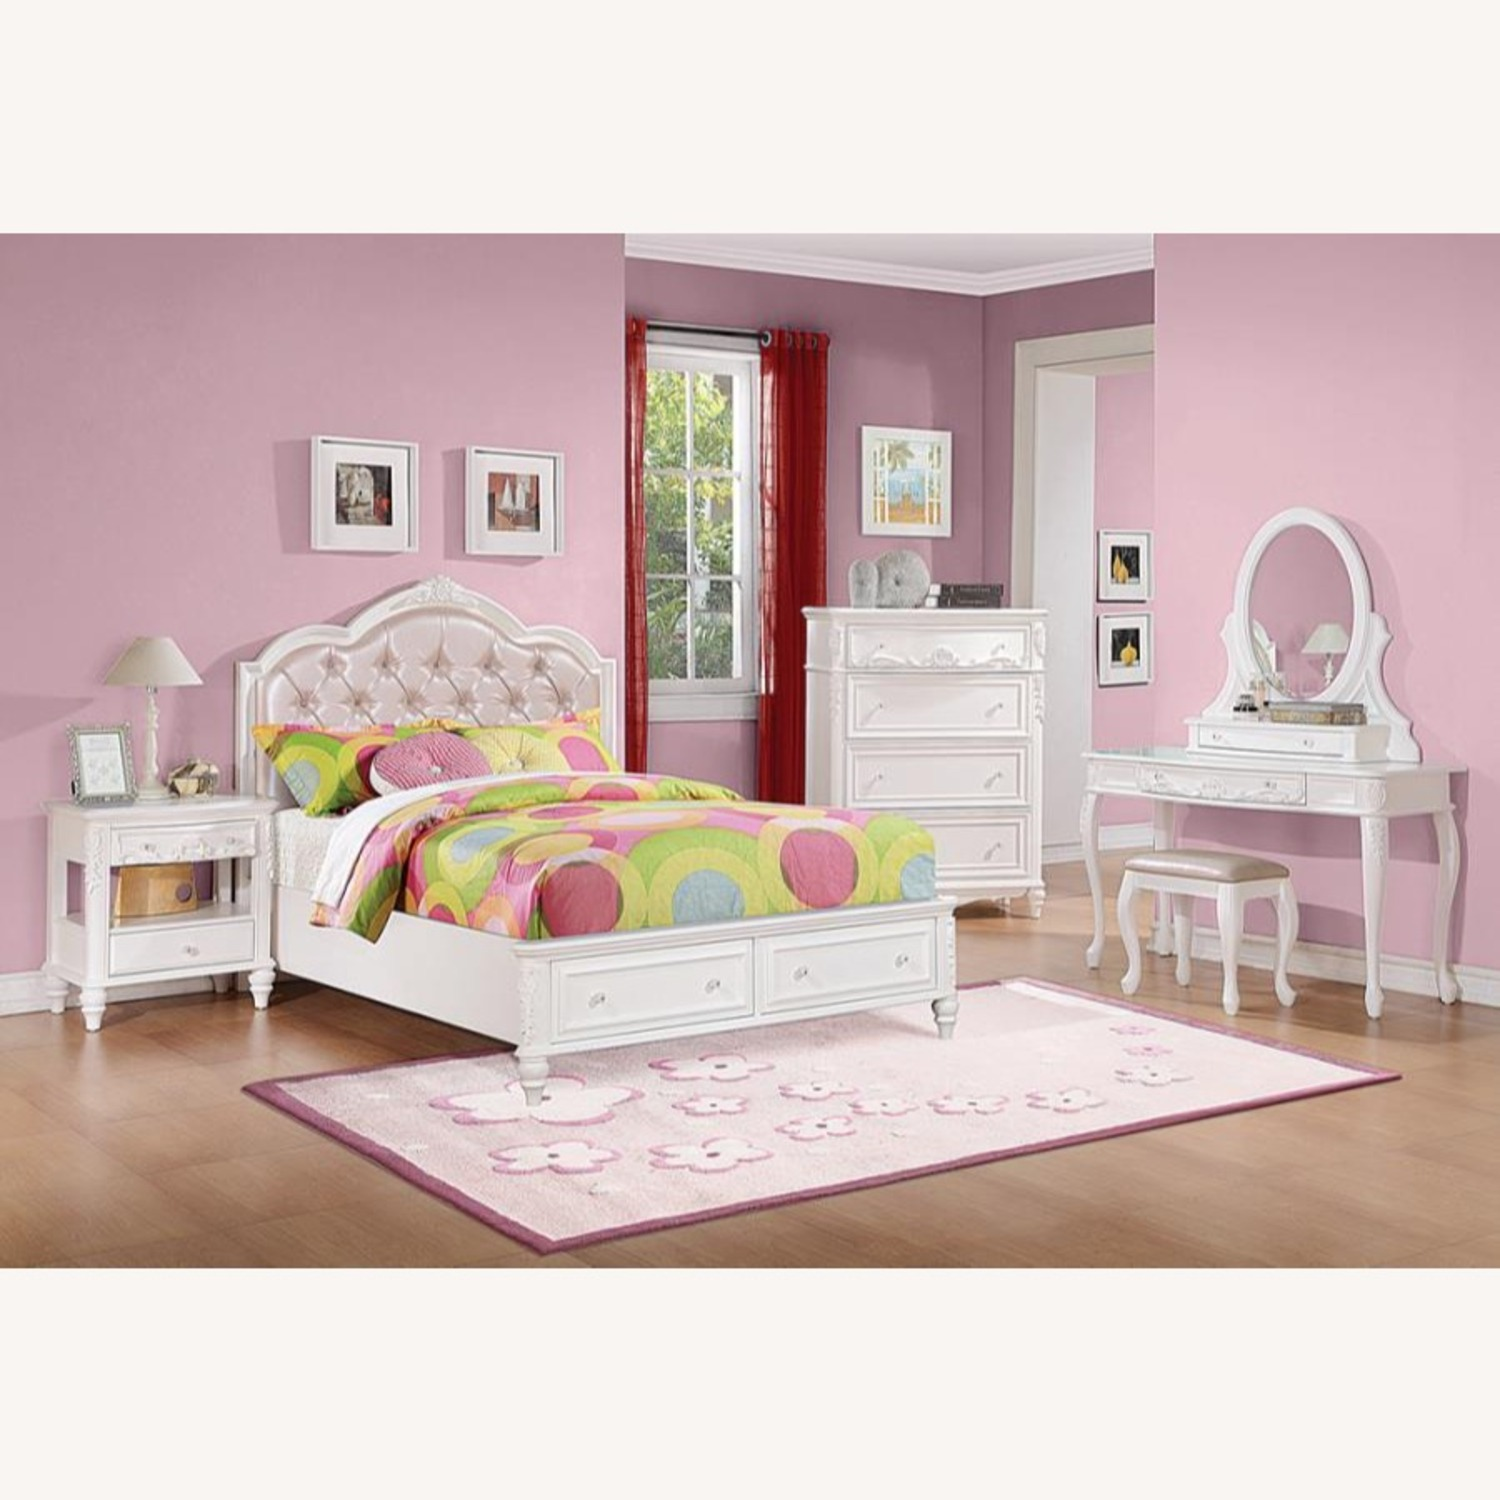 Twin Bed In White Finish W/ Pink Leatherette - image-2